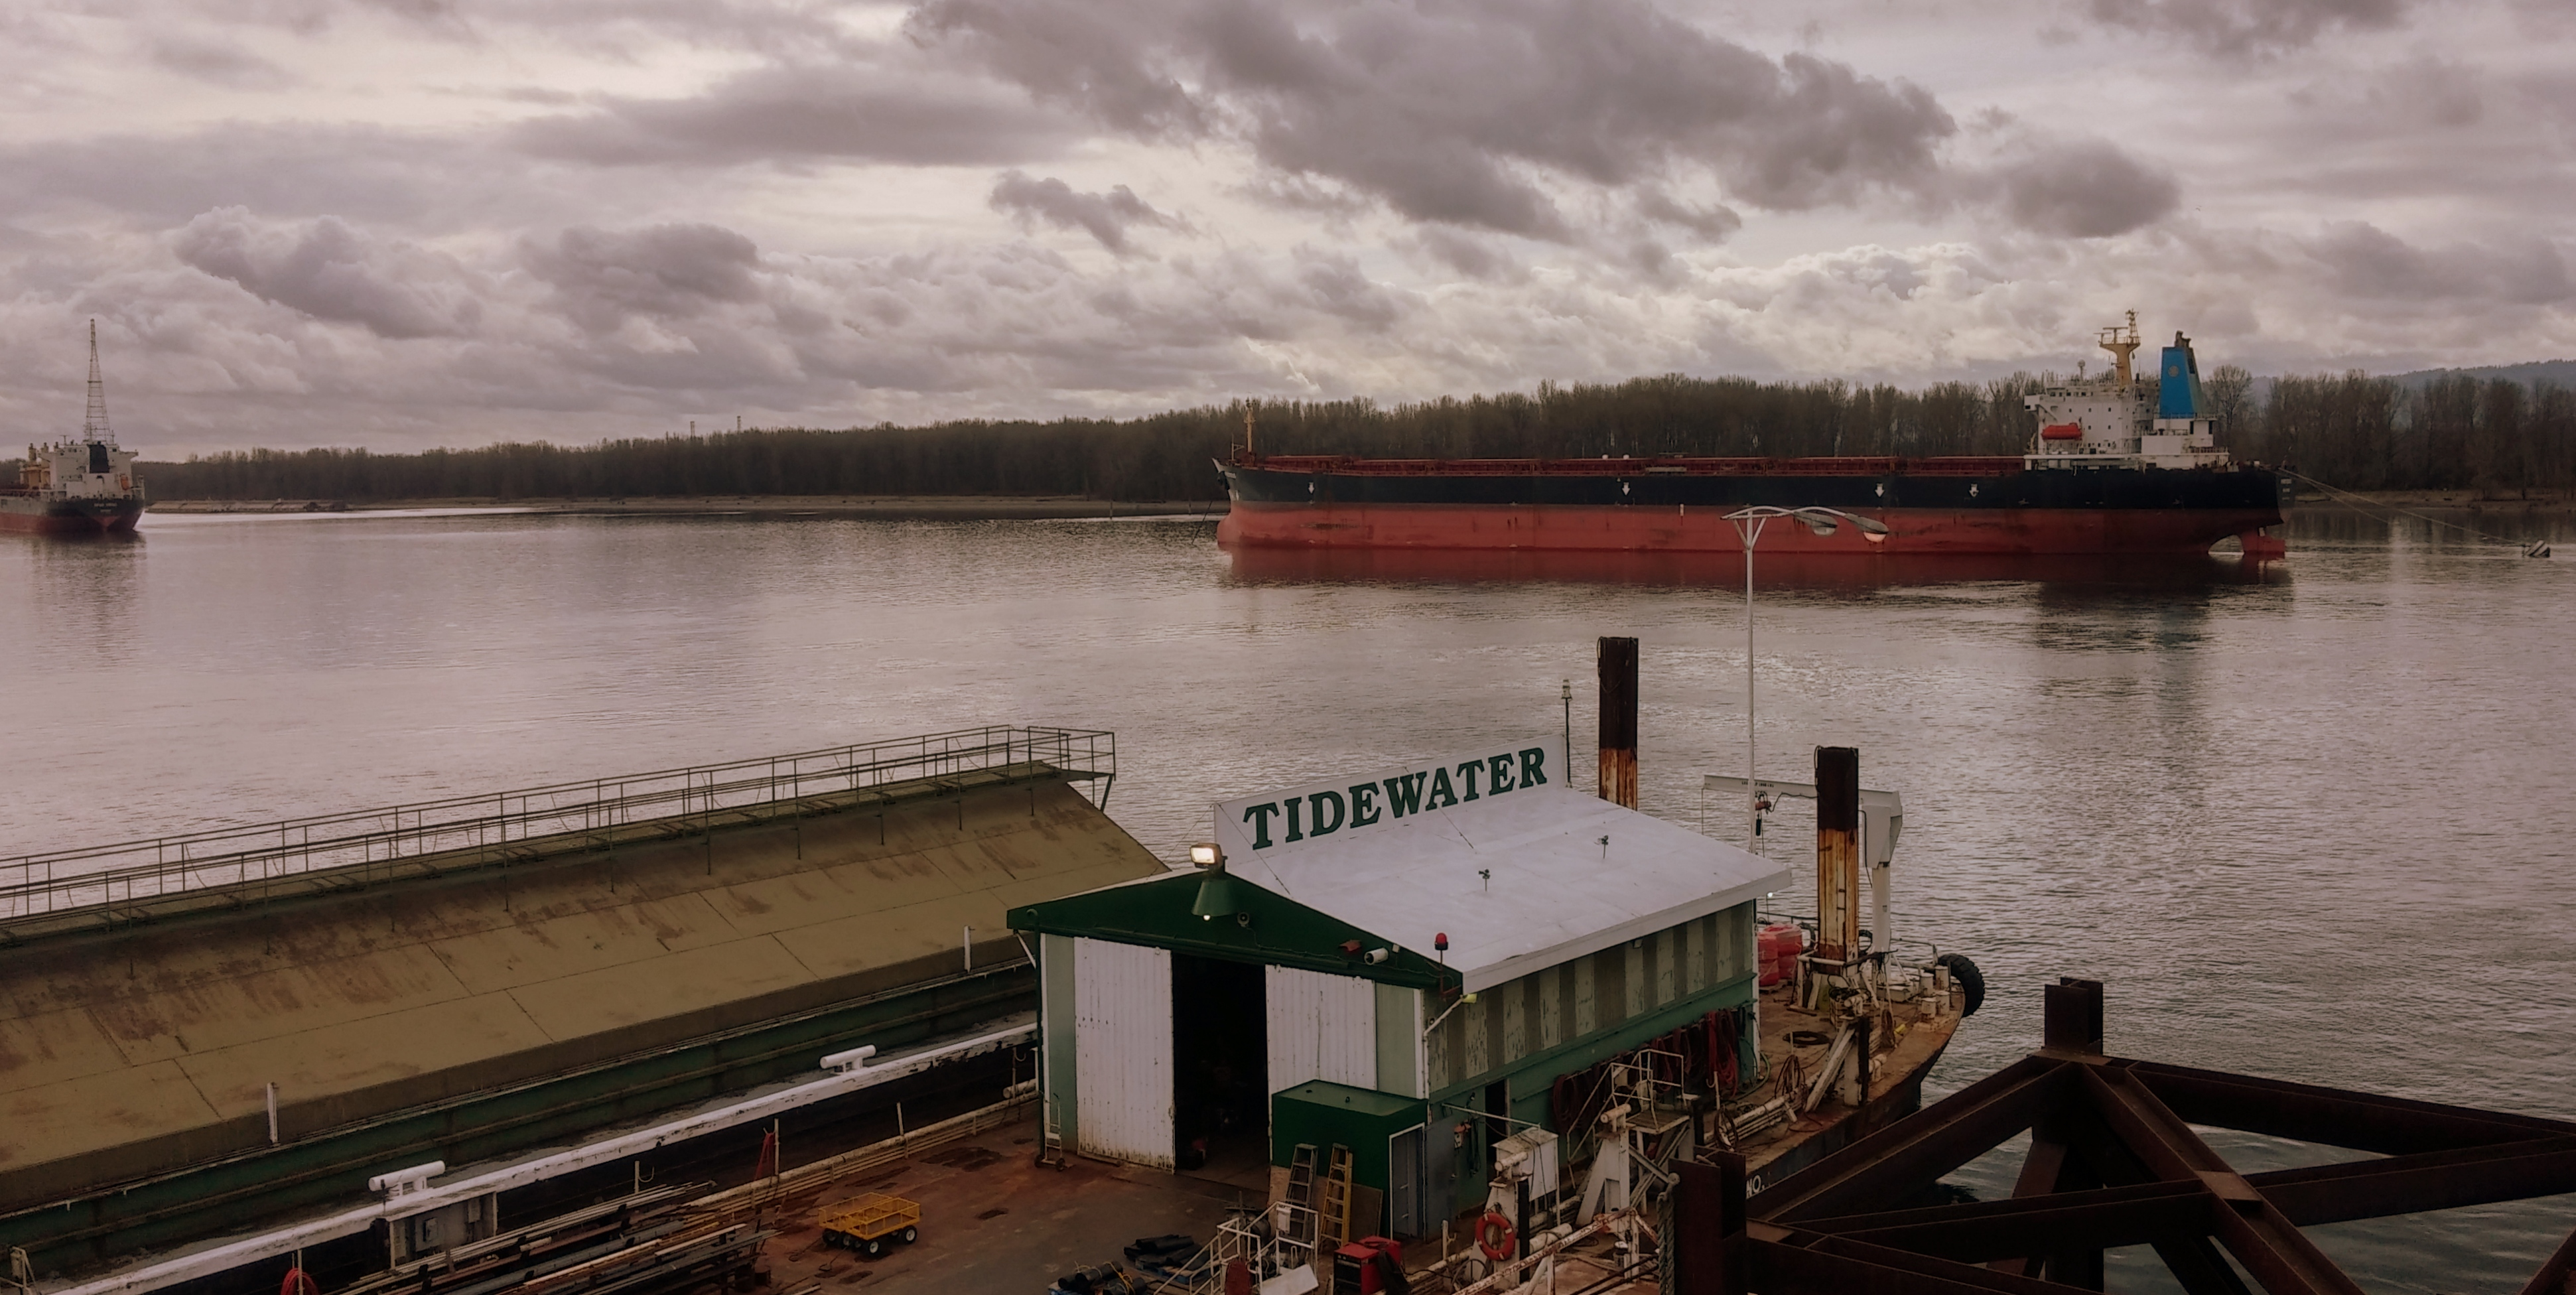 Tidewater Vancouver